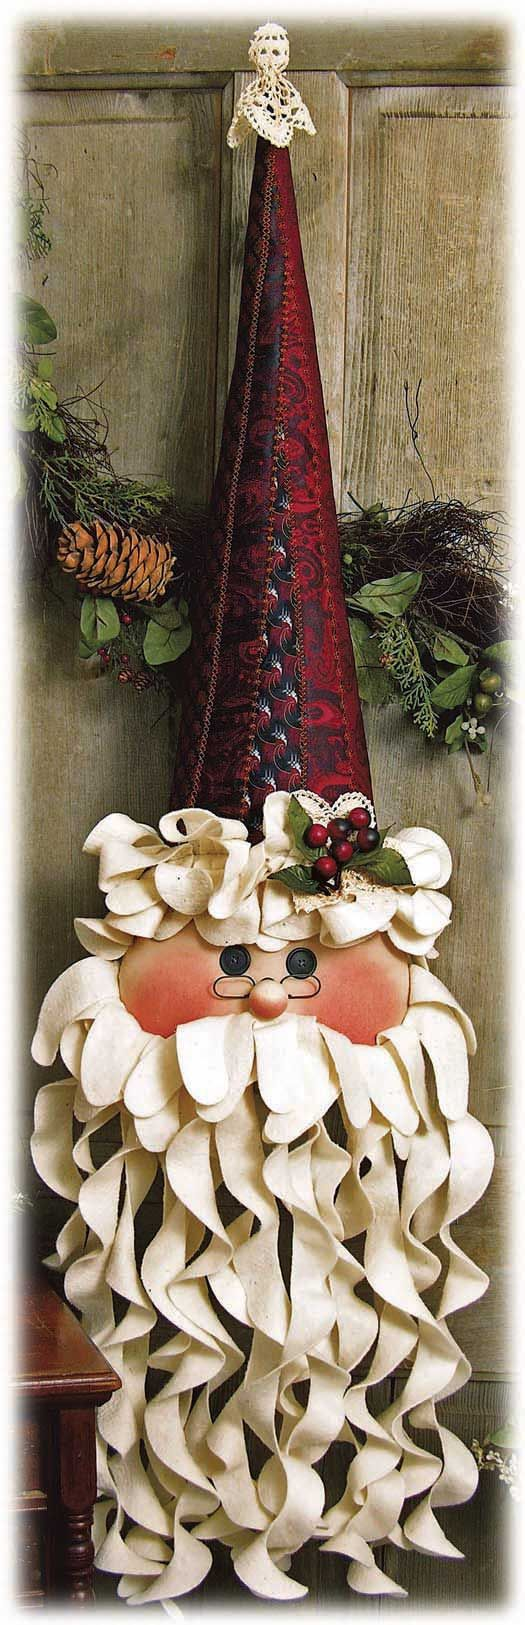 Yuletide Santa Ornament....so cute